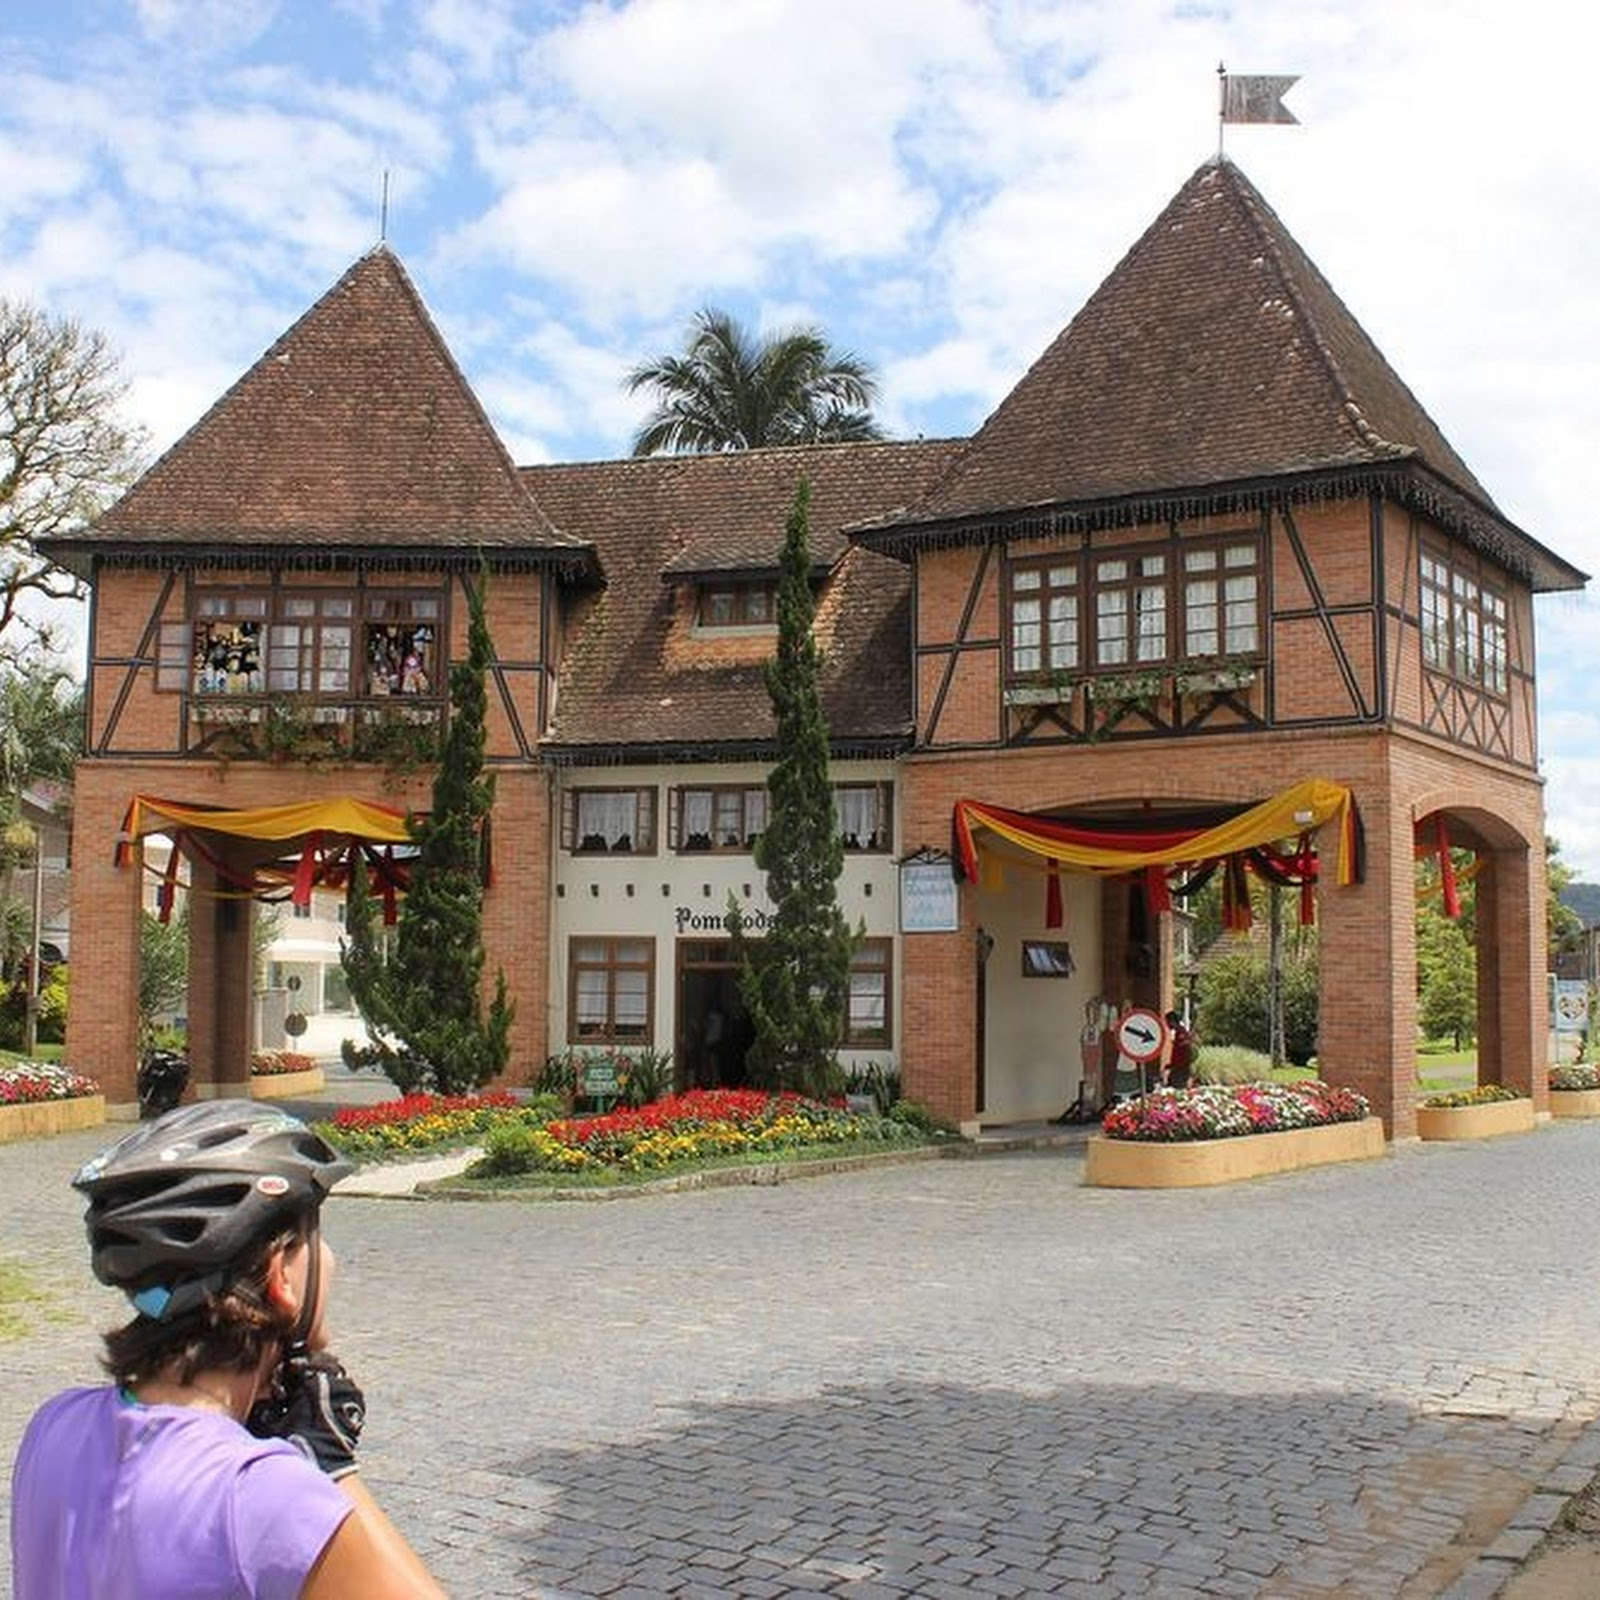 Pomerode: The Most German Town In Brazil